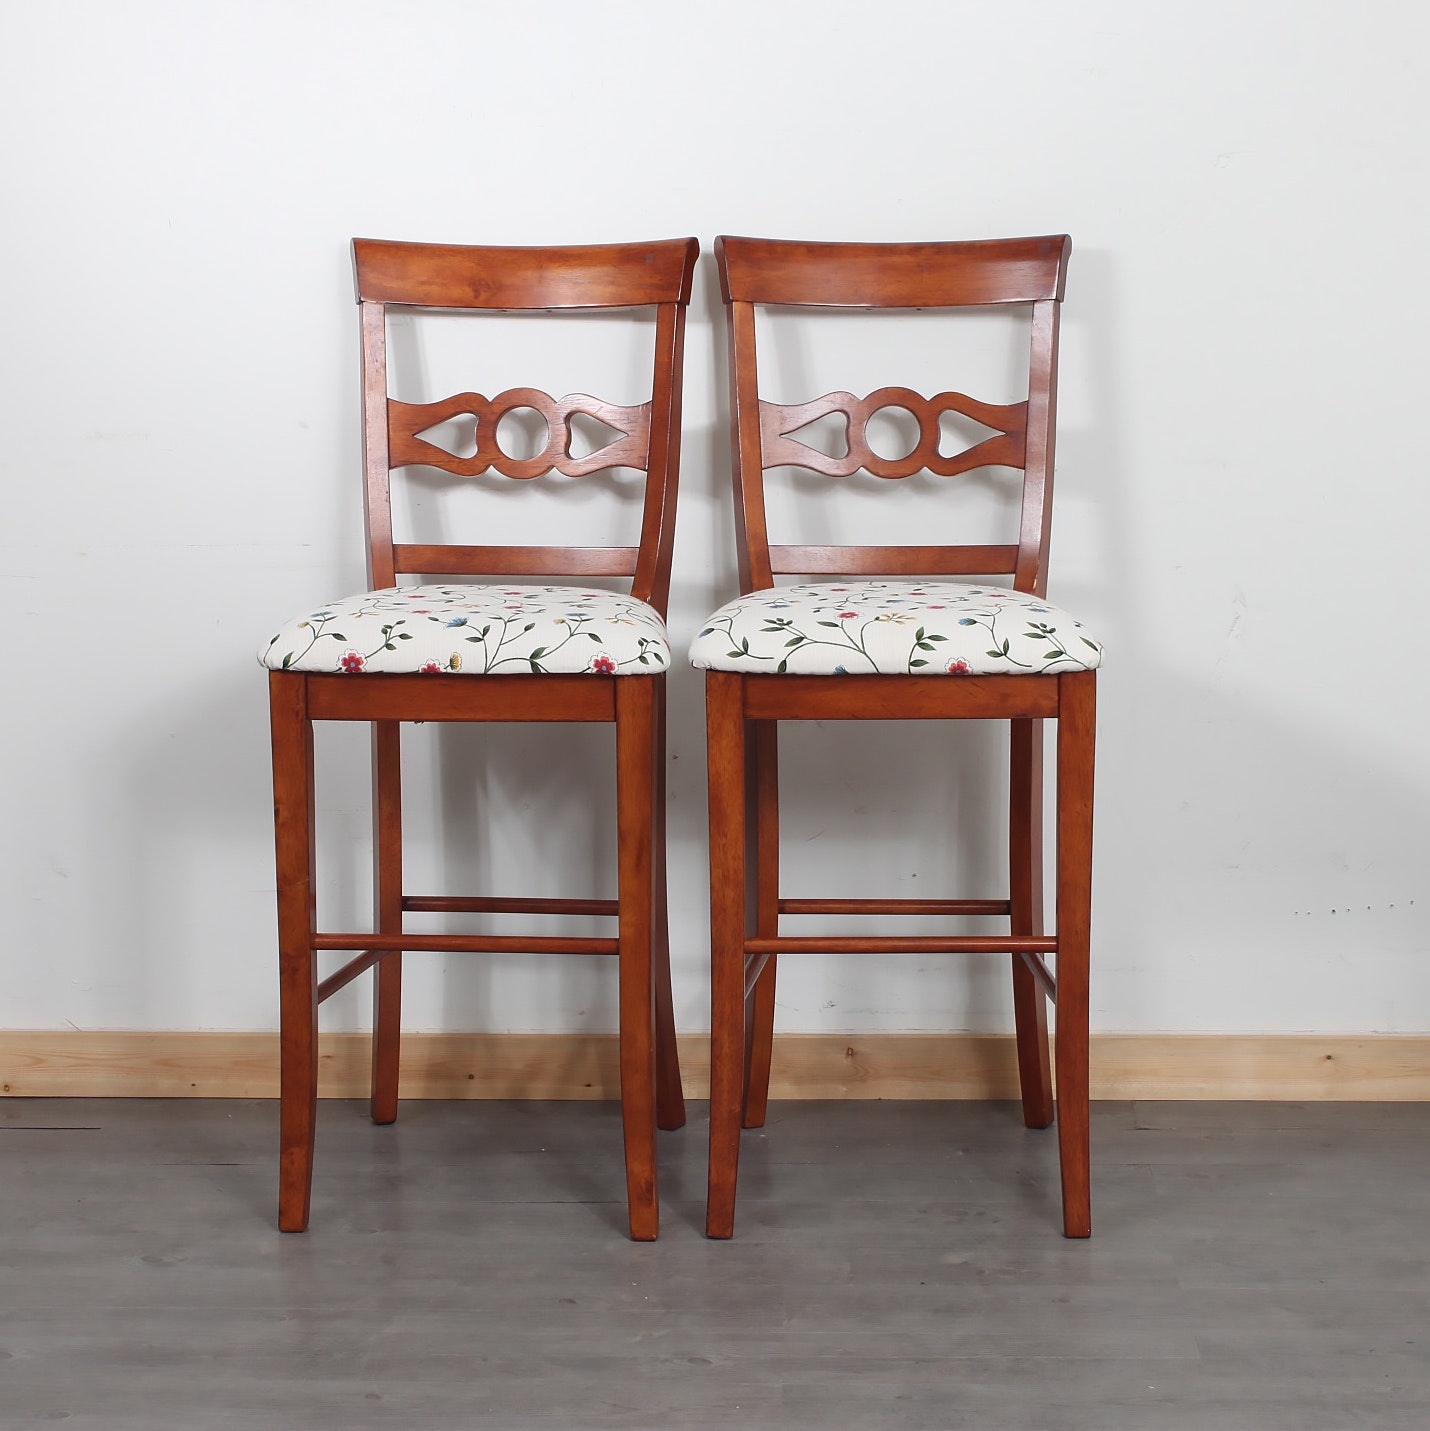 Two Upholstered Counter Stools